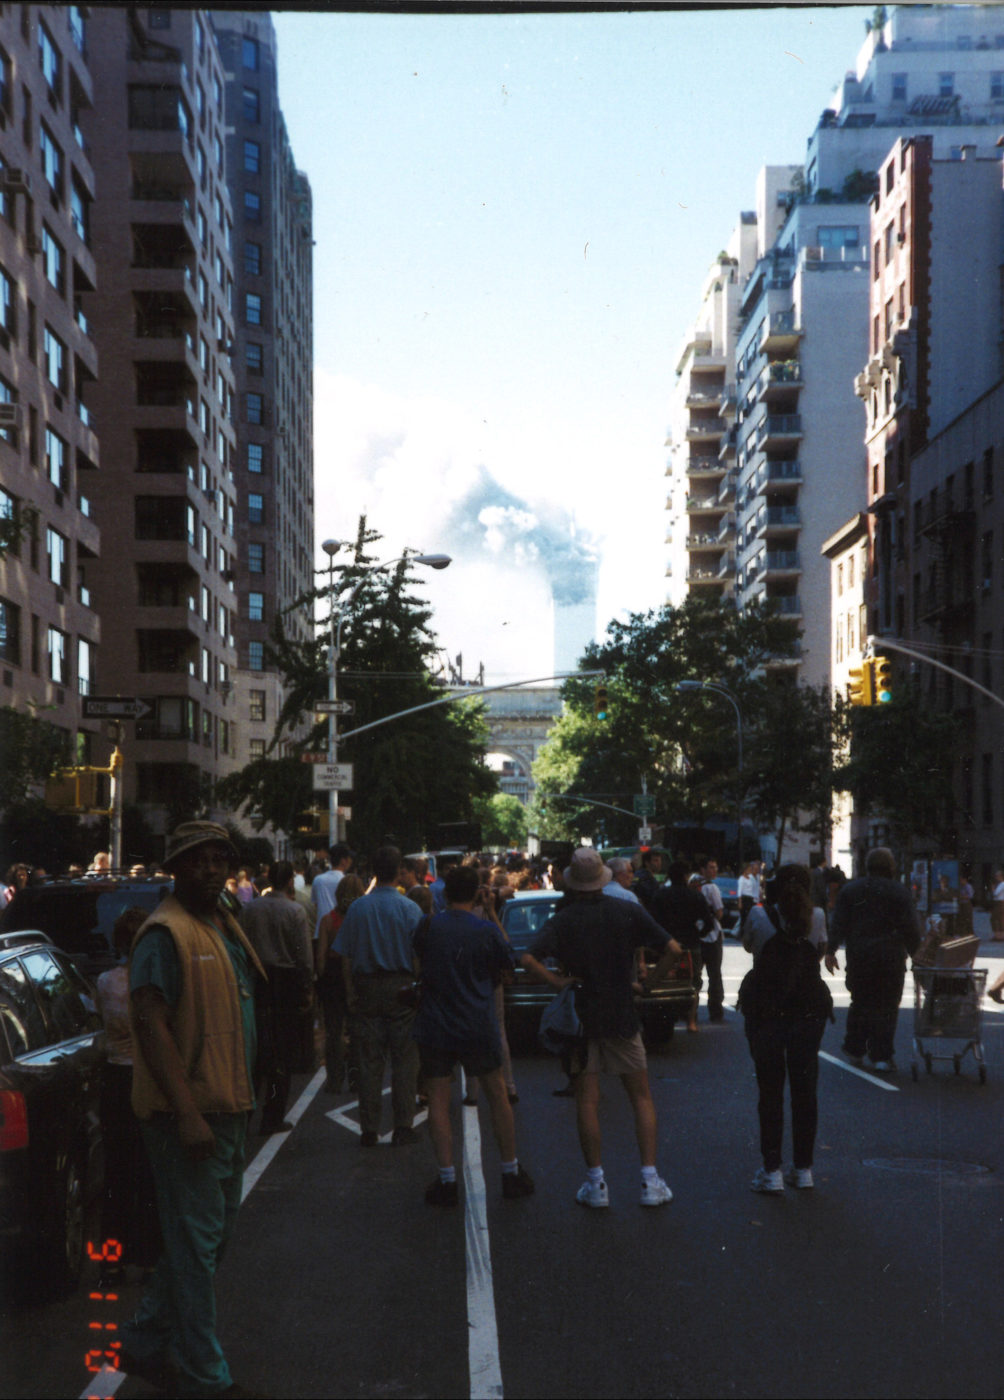 New Yorkers Stand Together Looking South Down 5th Avenue Tower 1 Burning after collapse of Tower 2.jpg